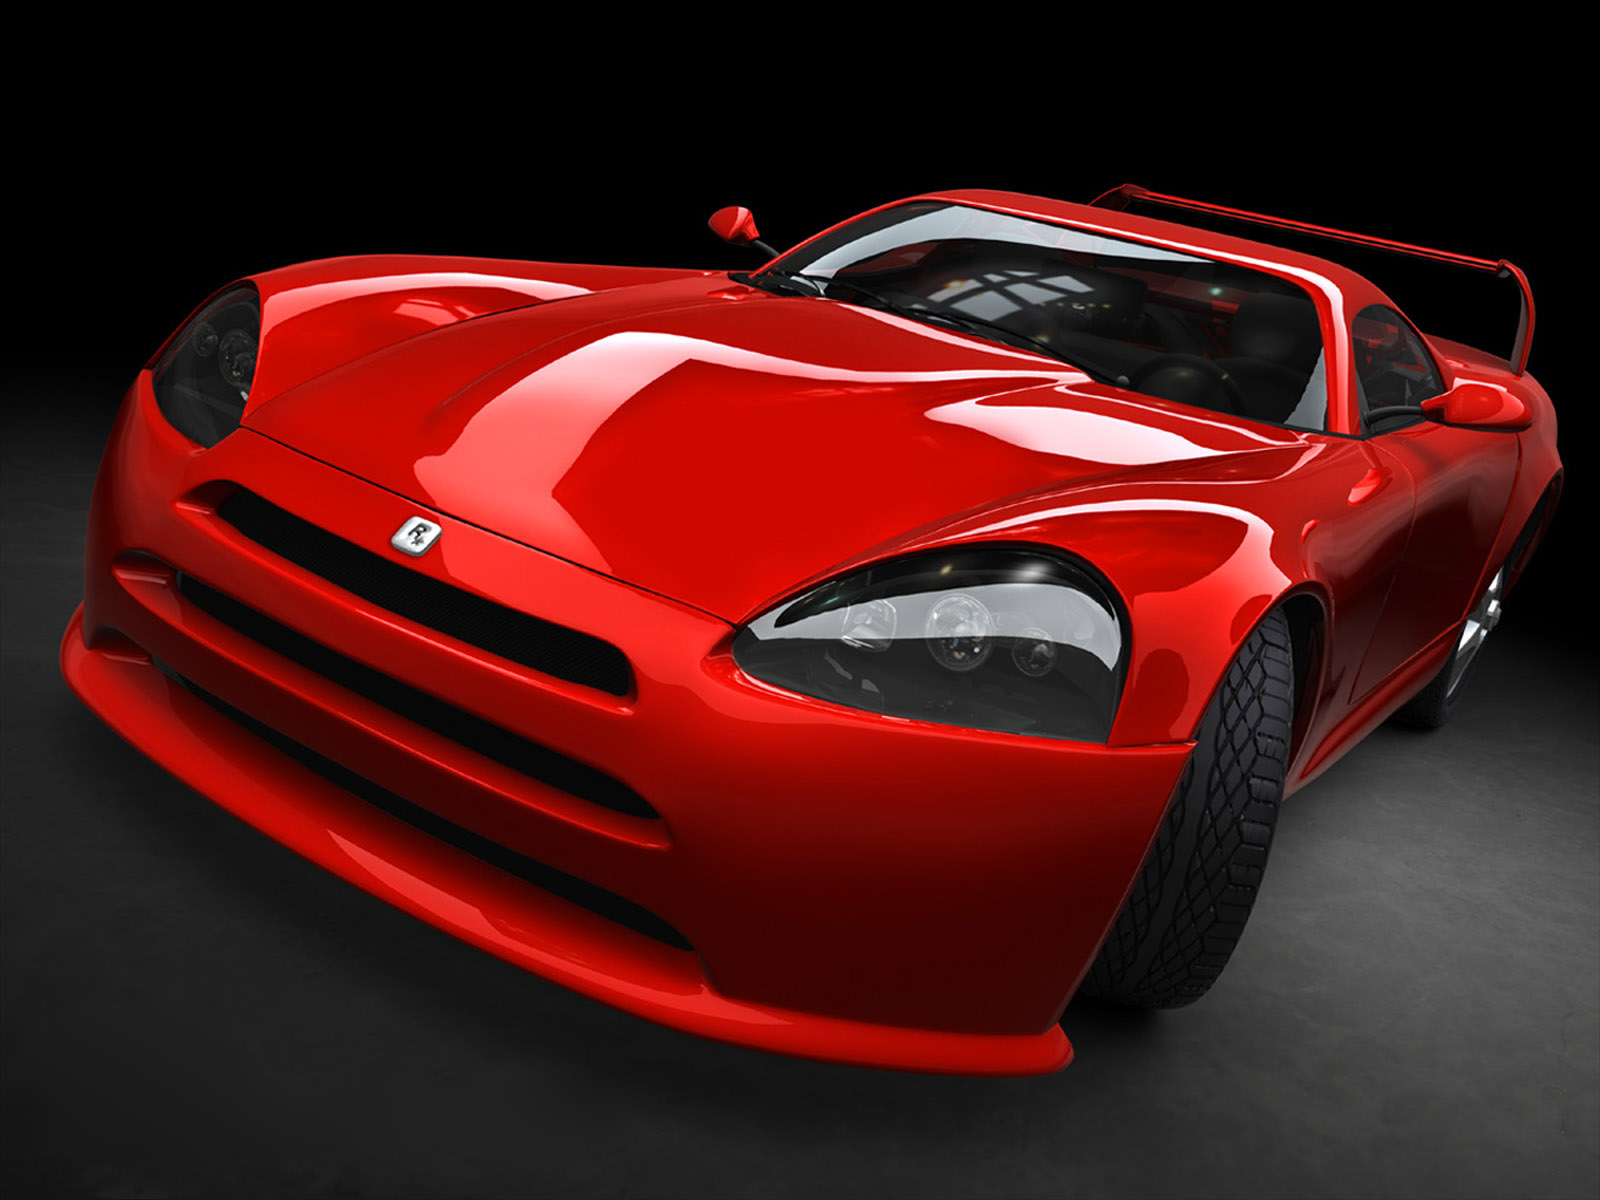 Viper red_cars_-_best_vehicle__world_fastest_luxory_red_cars